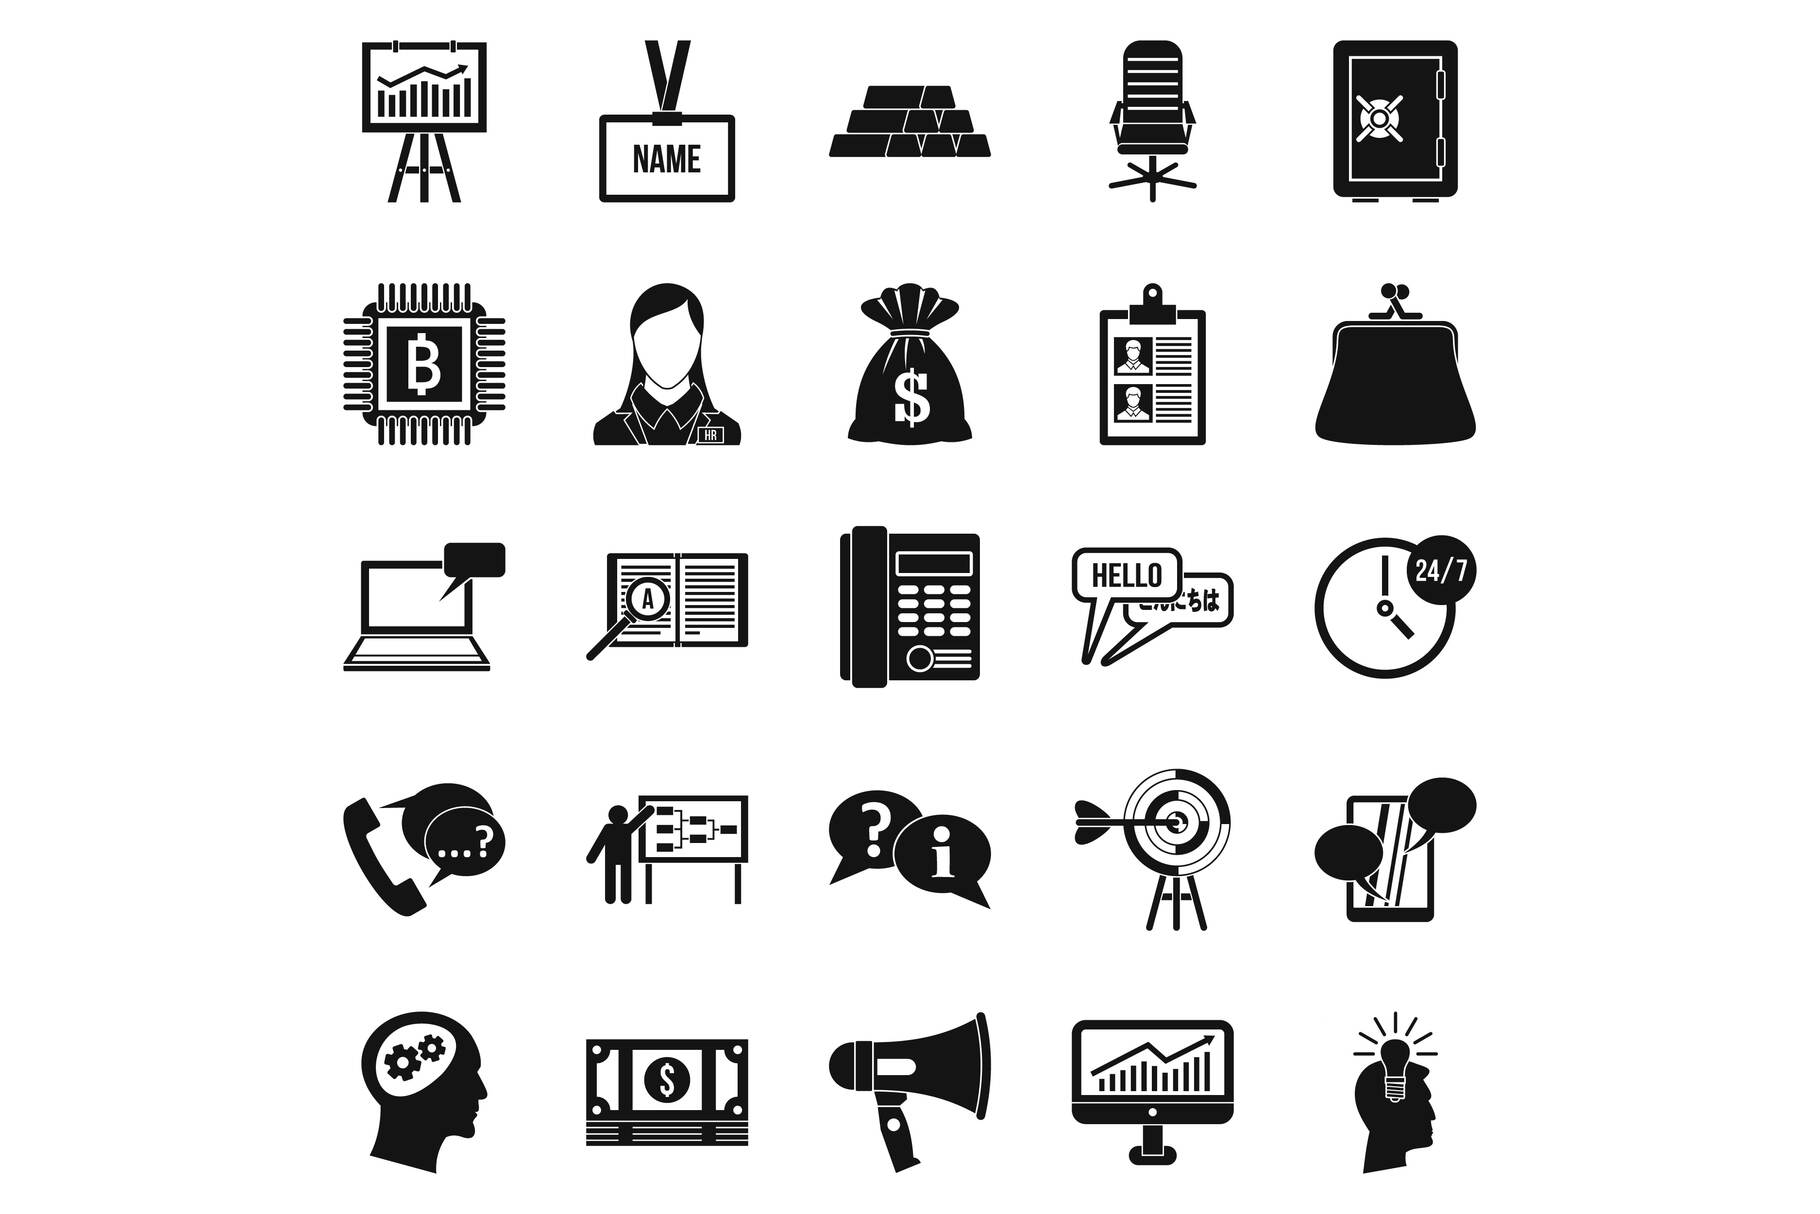 Blood money icons set, simple style example image 1